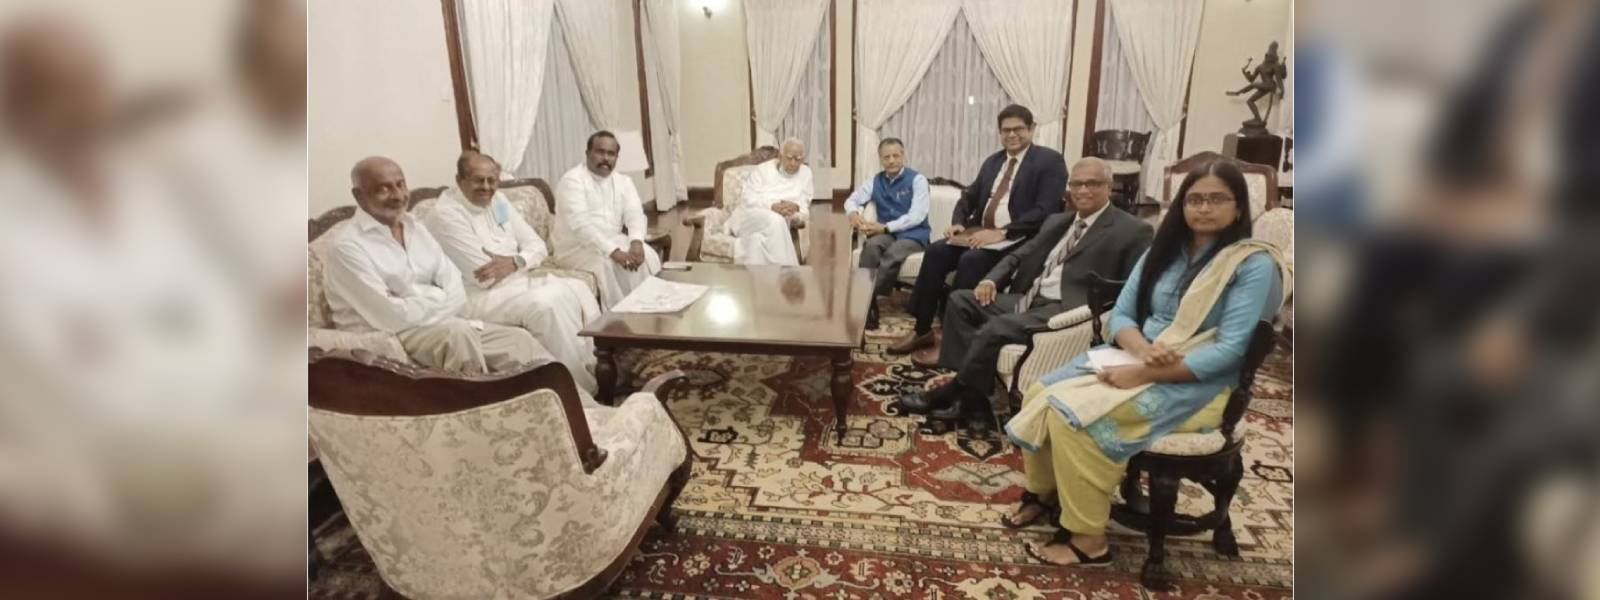 """India calls for """"full implementation"""" of 13th amendment"""